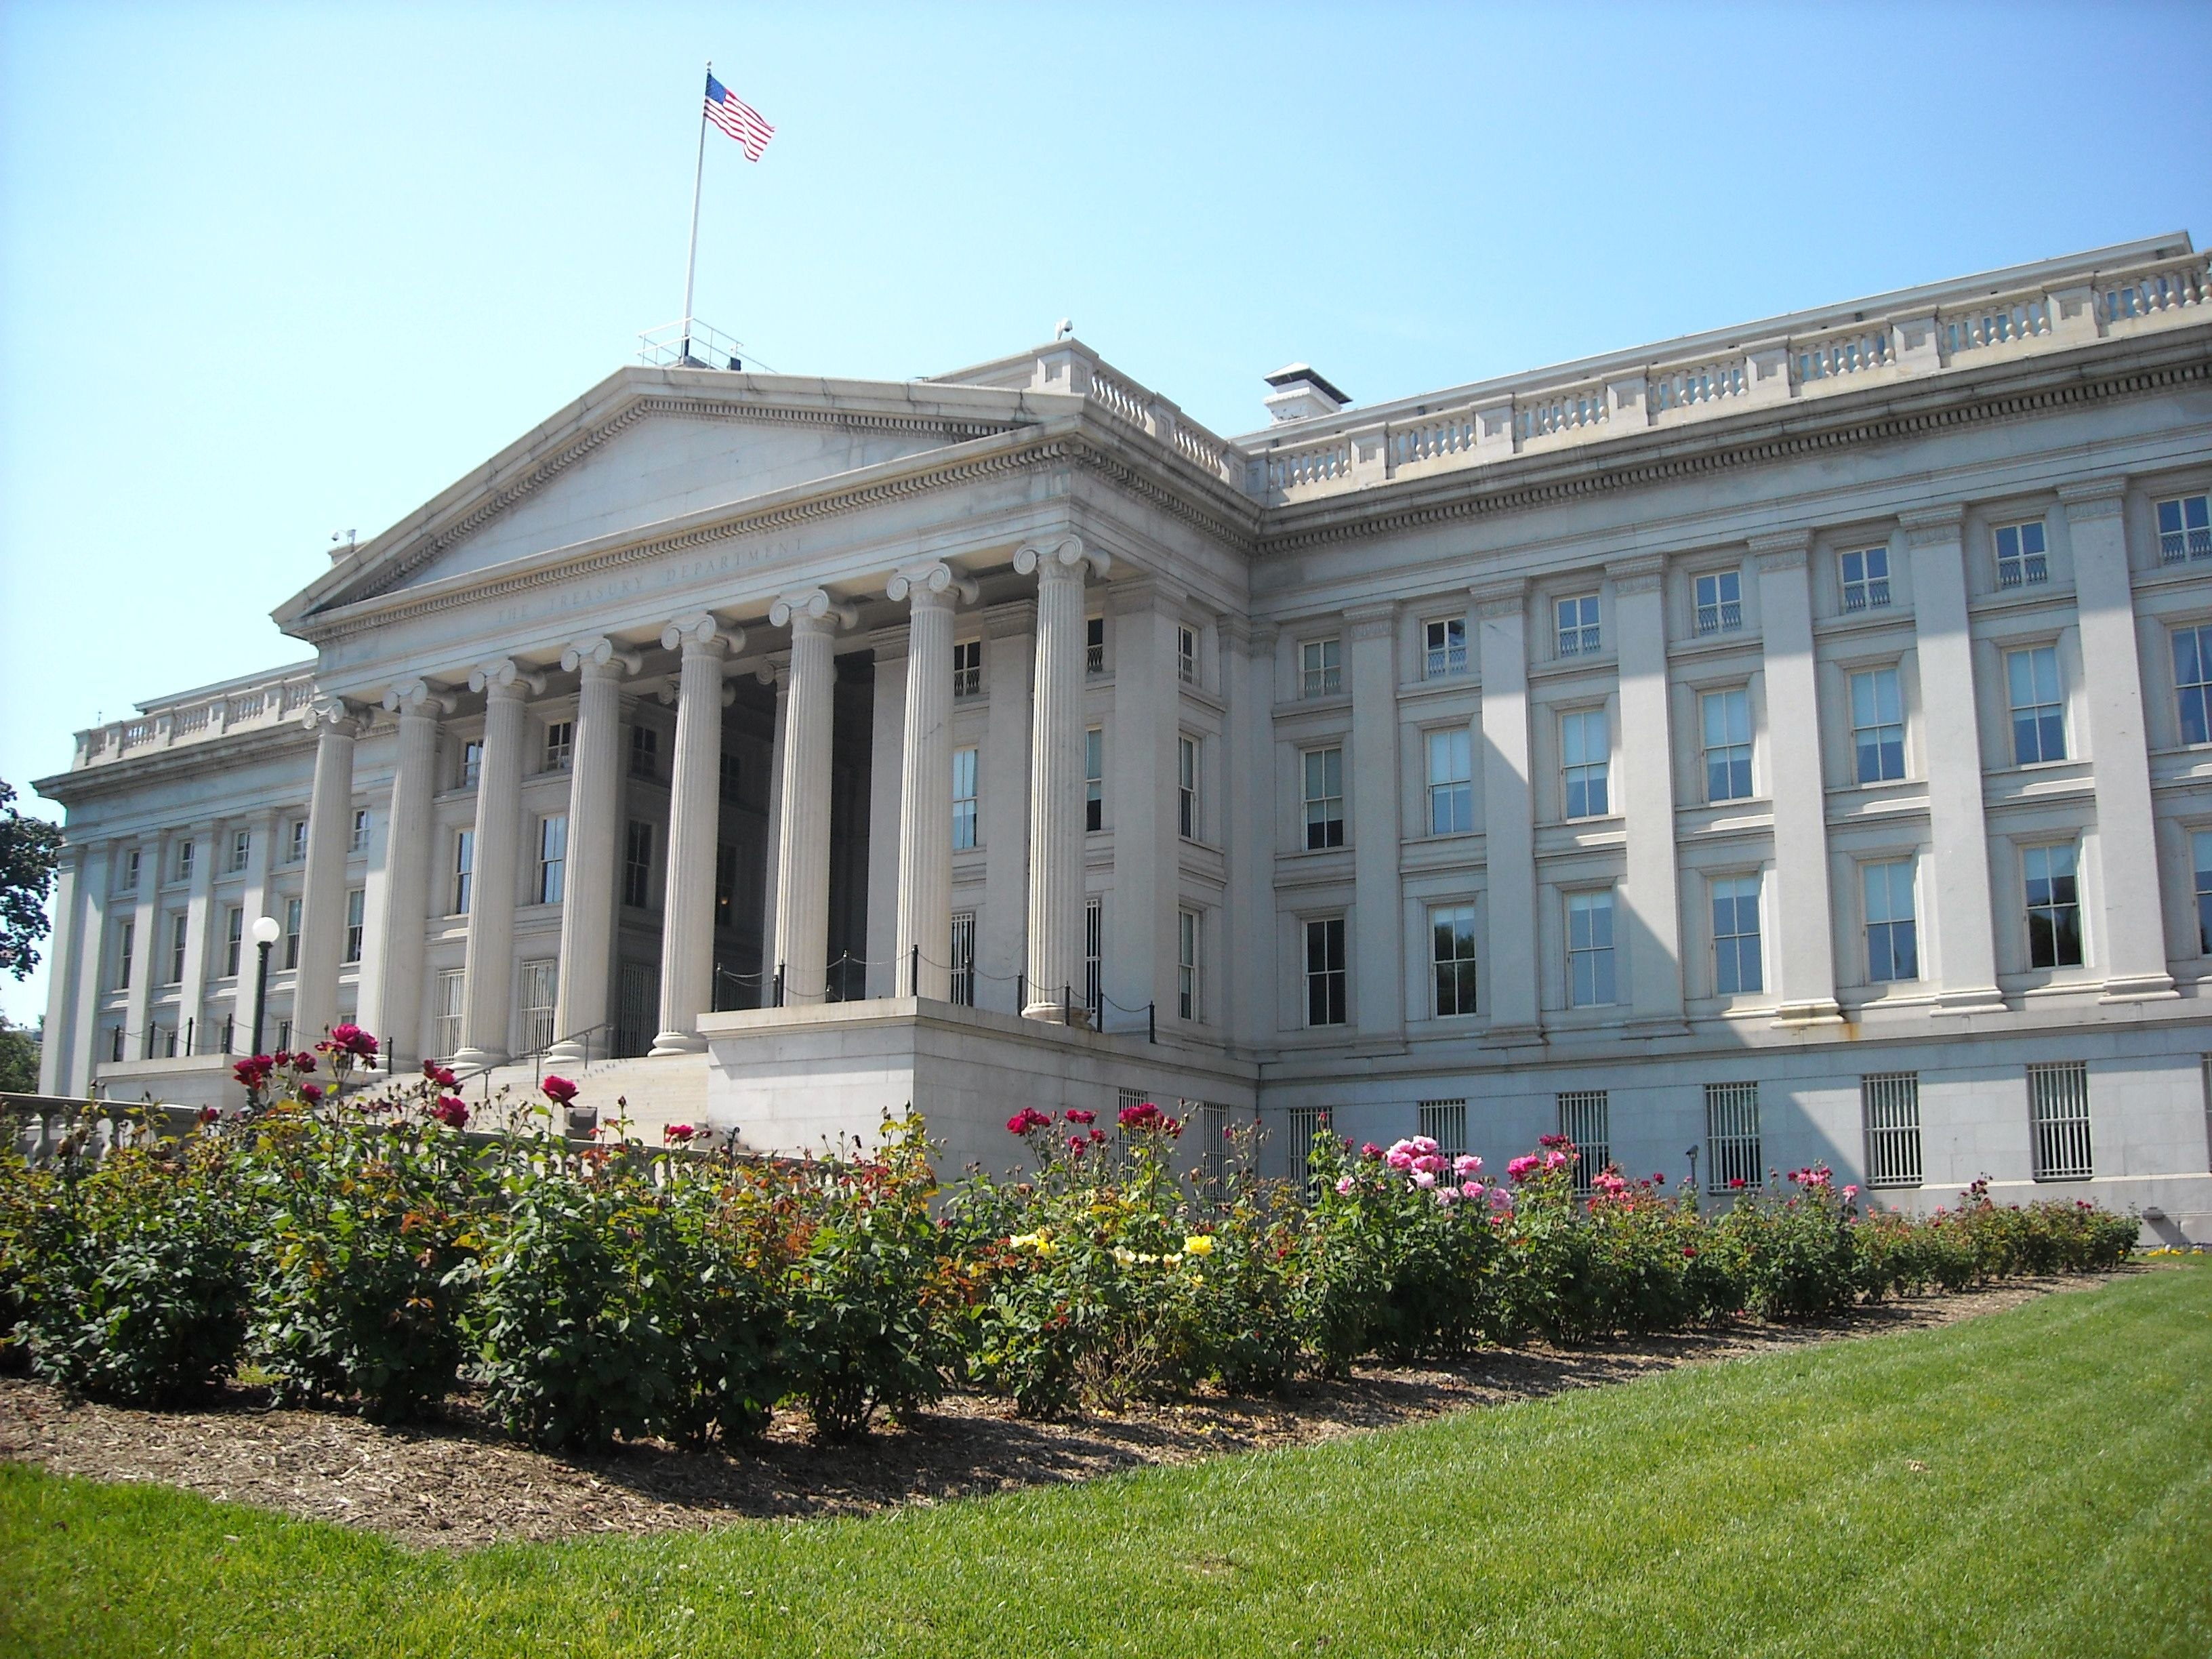 Treasury_Department_rear_view.JPG